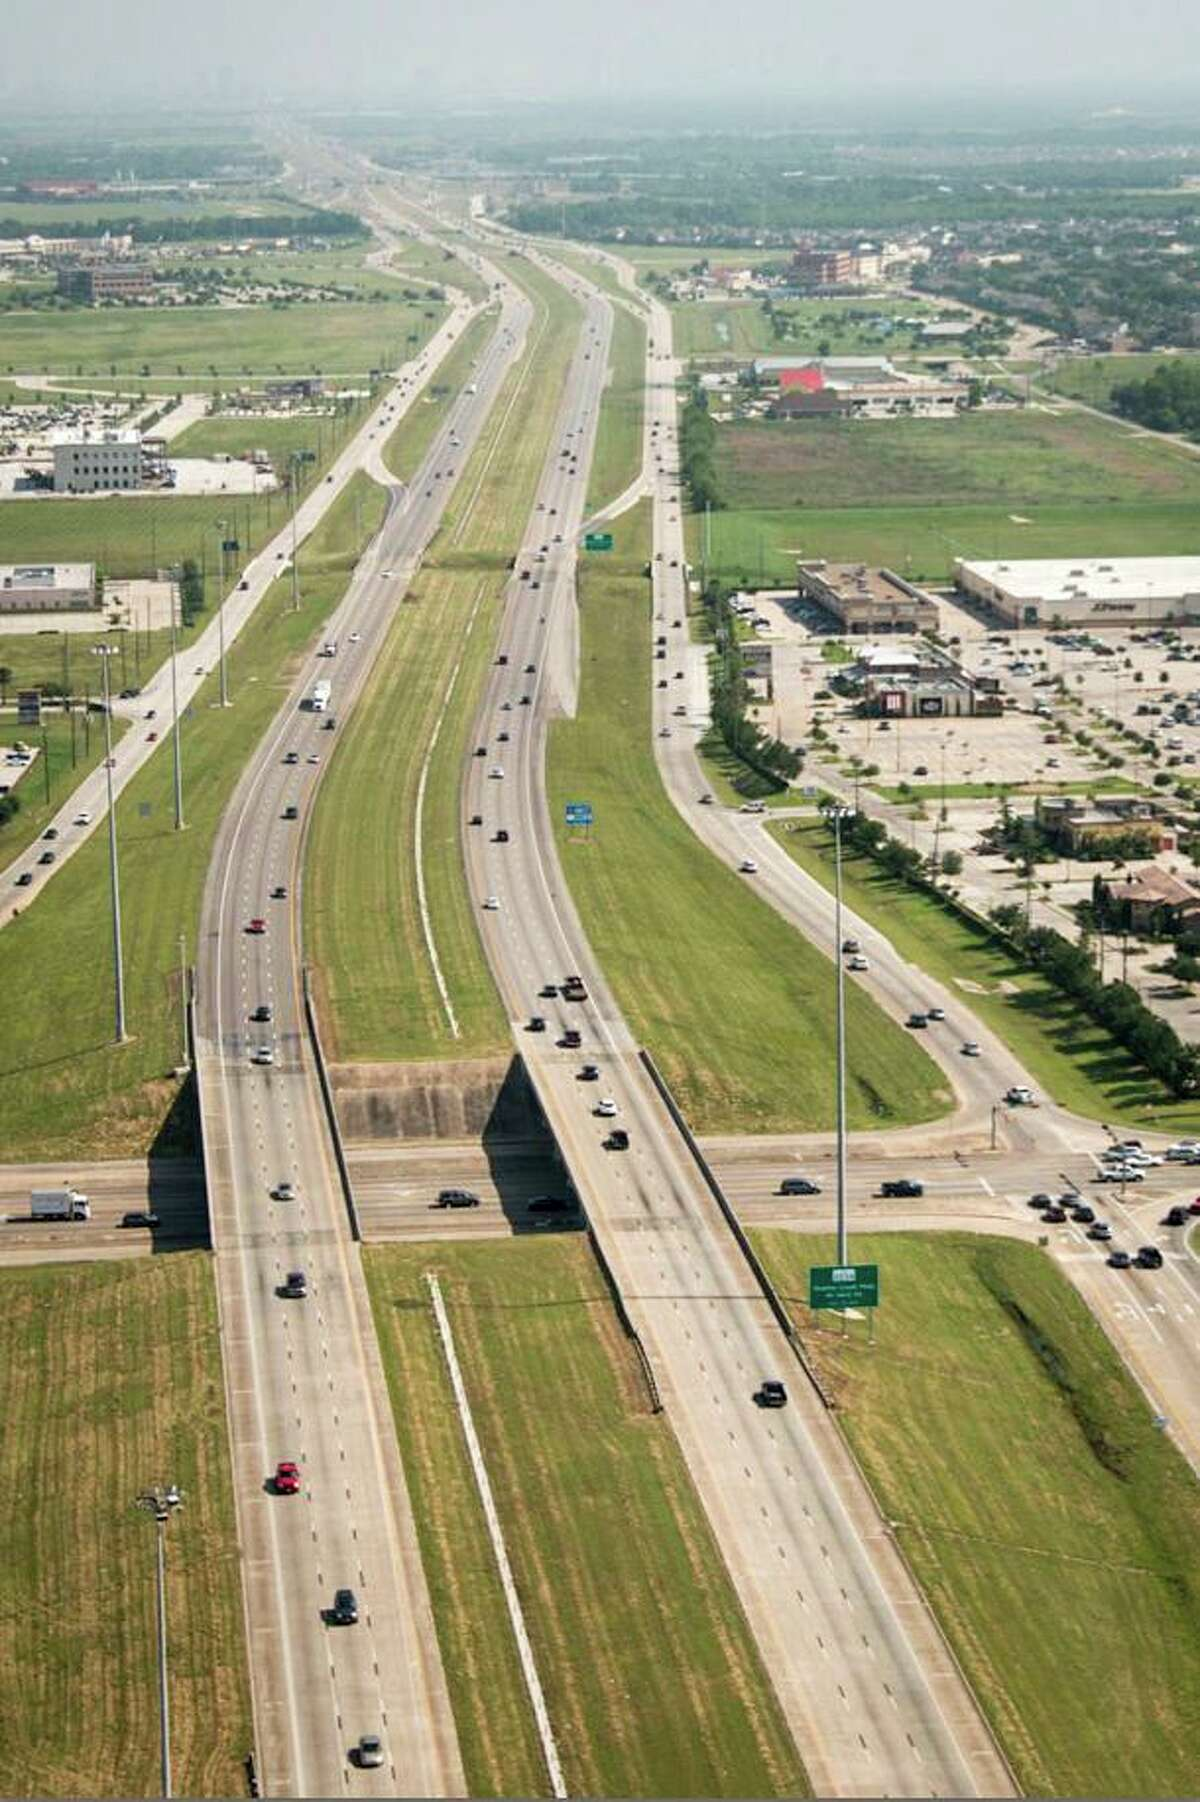 Brazoria County officials plan to add two toll lanes in each direction in the median of Texas 288, from County Road 58 north to the Harris County line. Photo is looking north along Texas 288 from Broadway in Pearland.